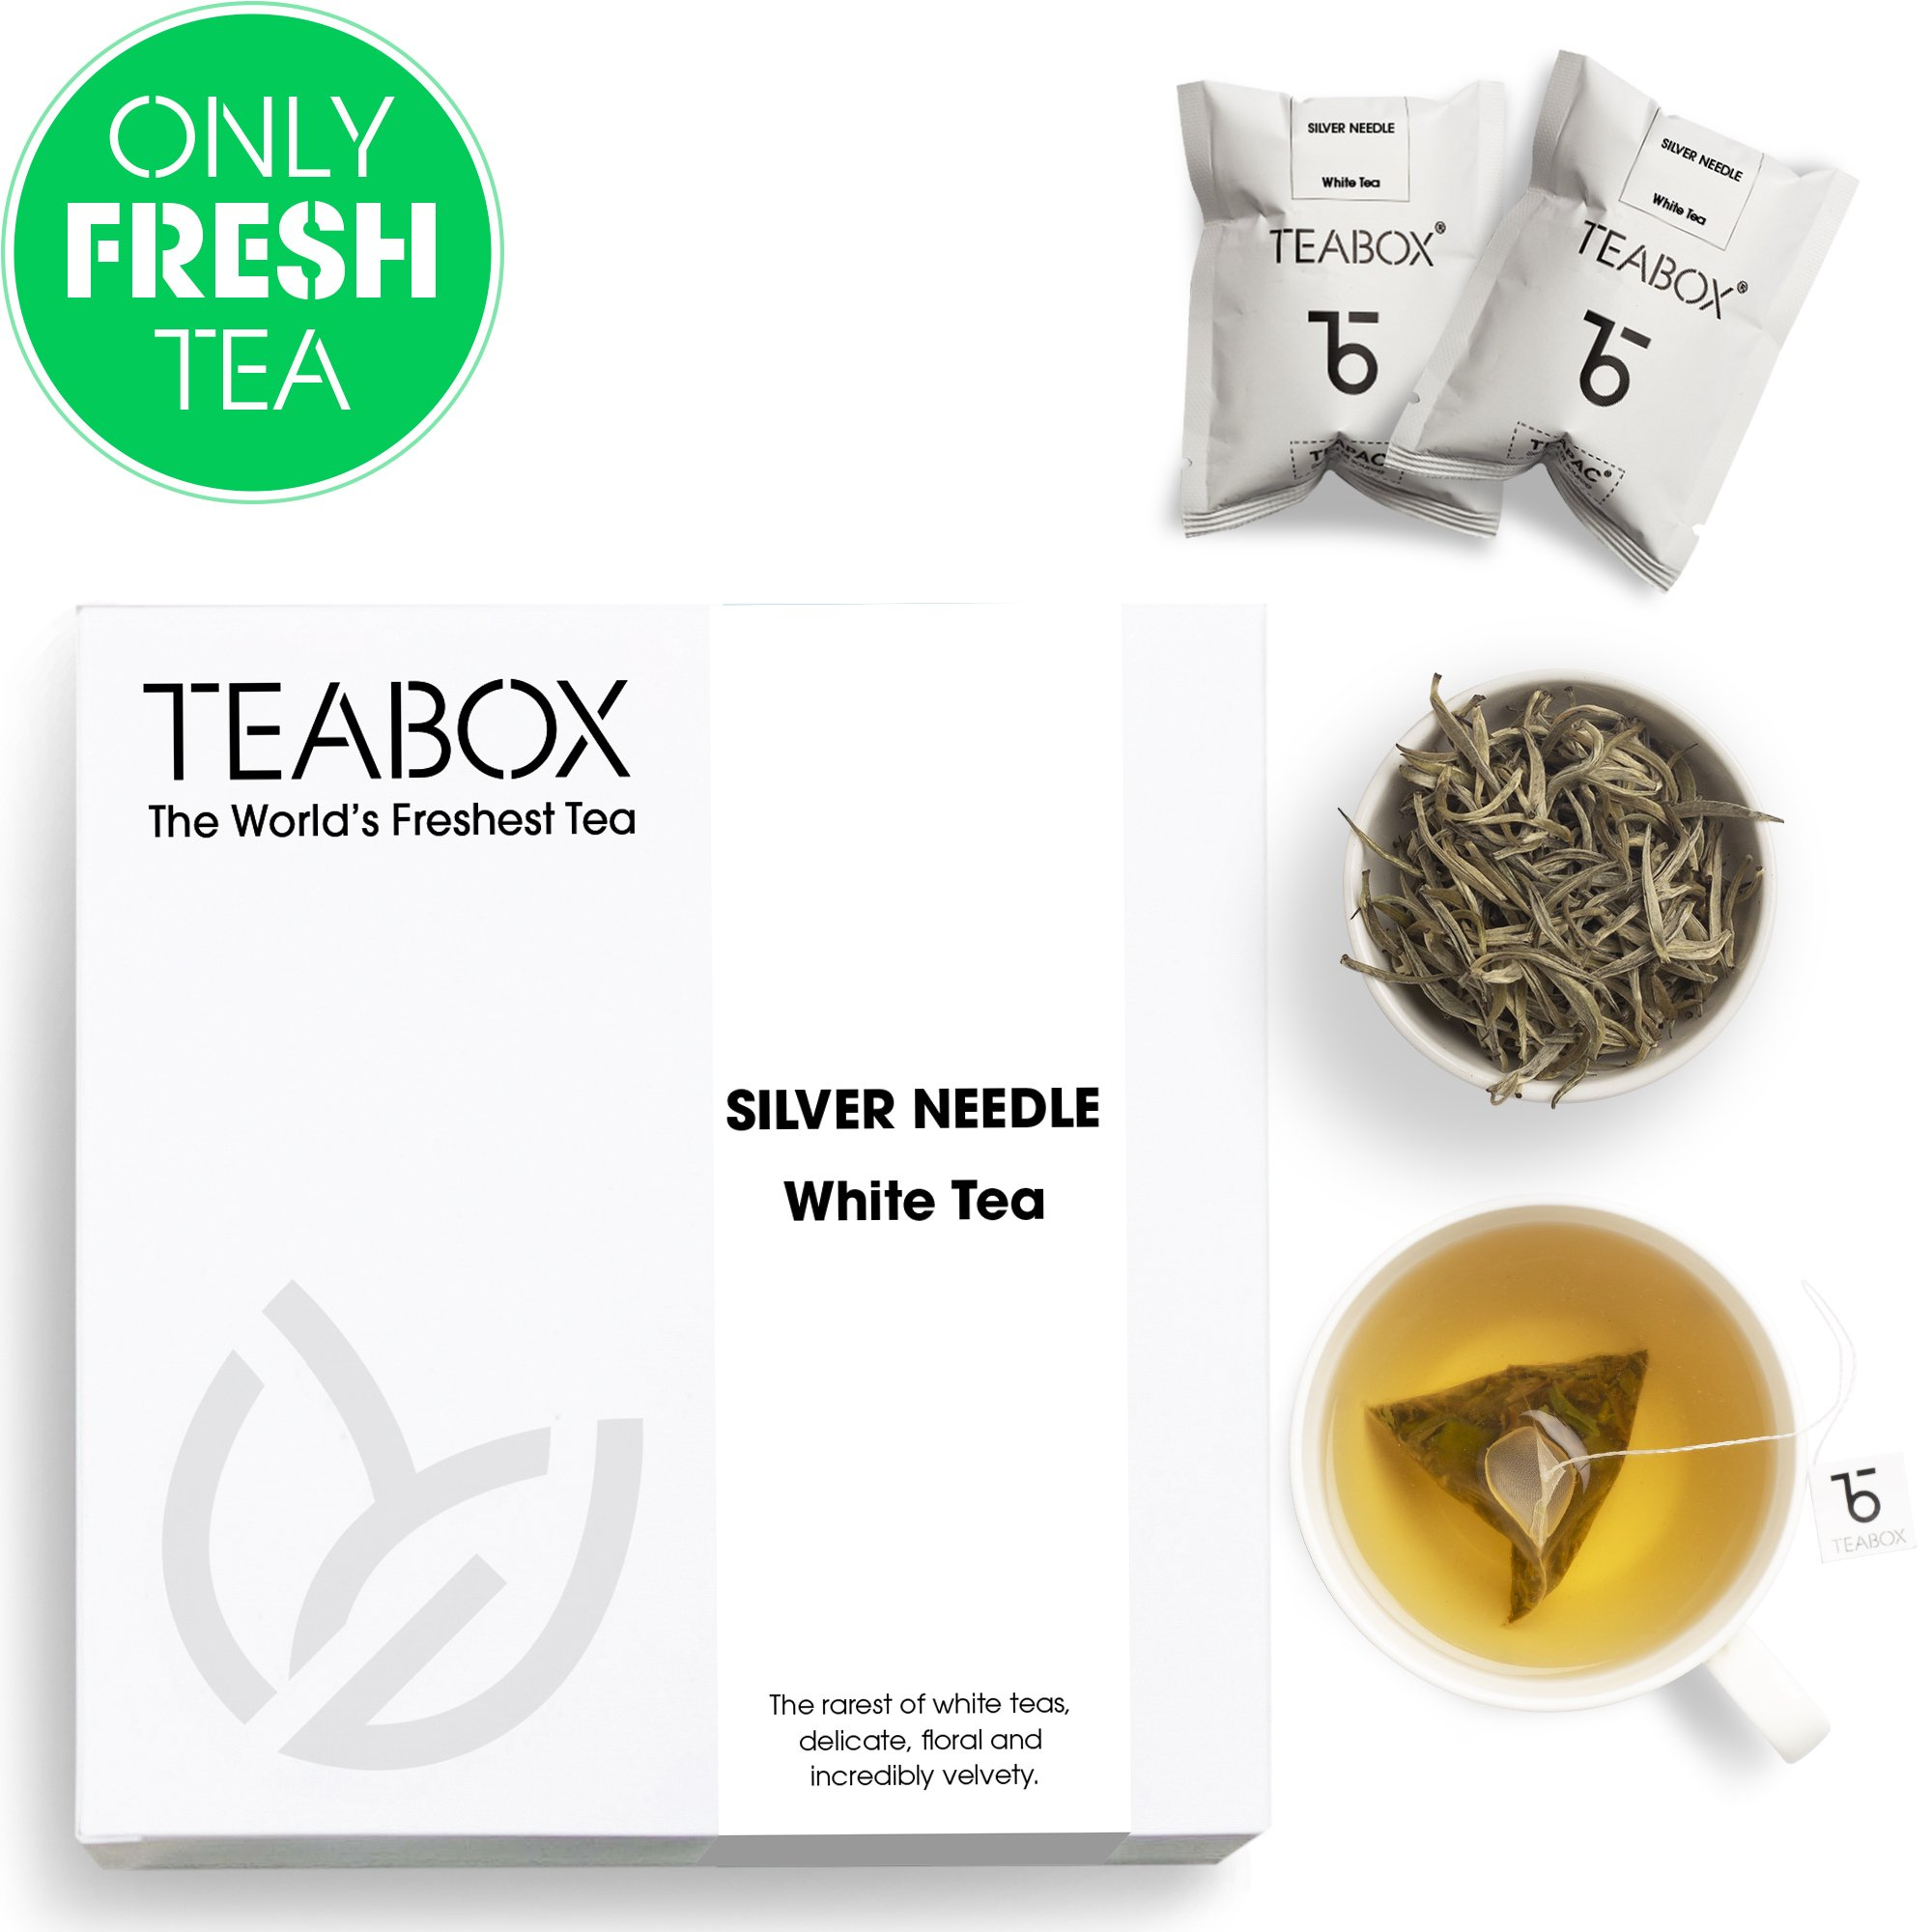 Teabox Darjeeling Silver Needle White Tea, 16 Tea Bags | 100% Natural Premium High Altitude Darjeeling CTM Silver Needle Tea | Low Caffeine and High Anti-Oxidants | Sealed-at-Source Freshness by Teabox (Image #1)